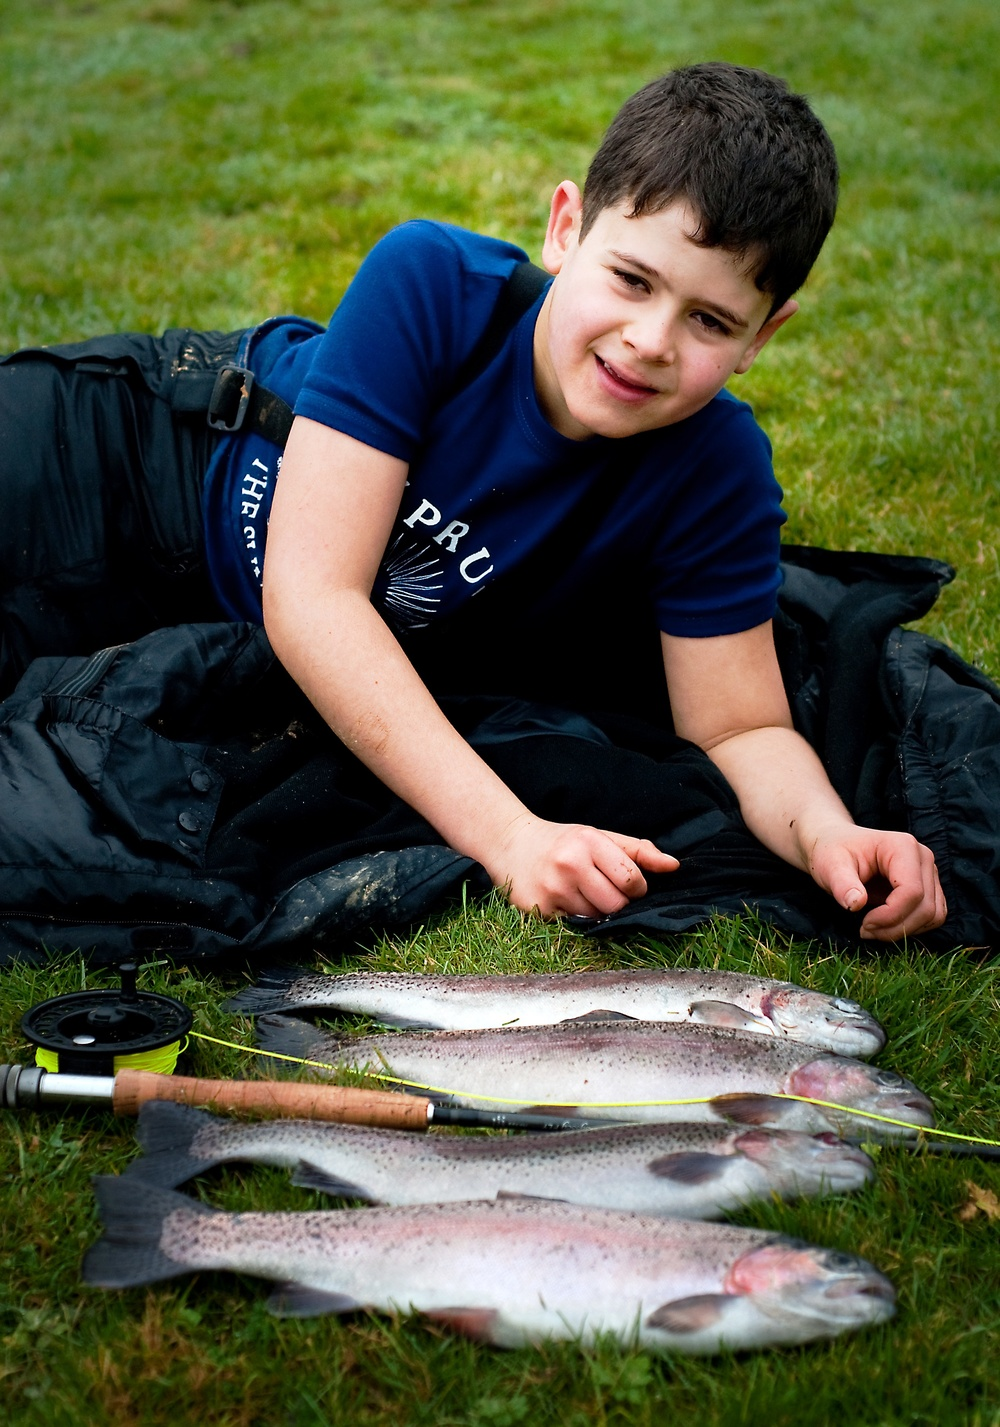 Elliot Pryor, junior novice, with his first 4 trout ever